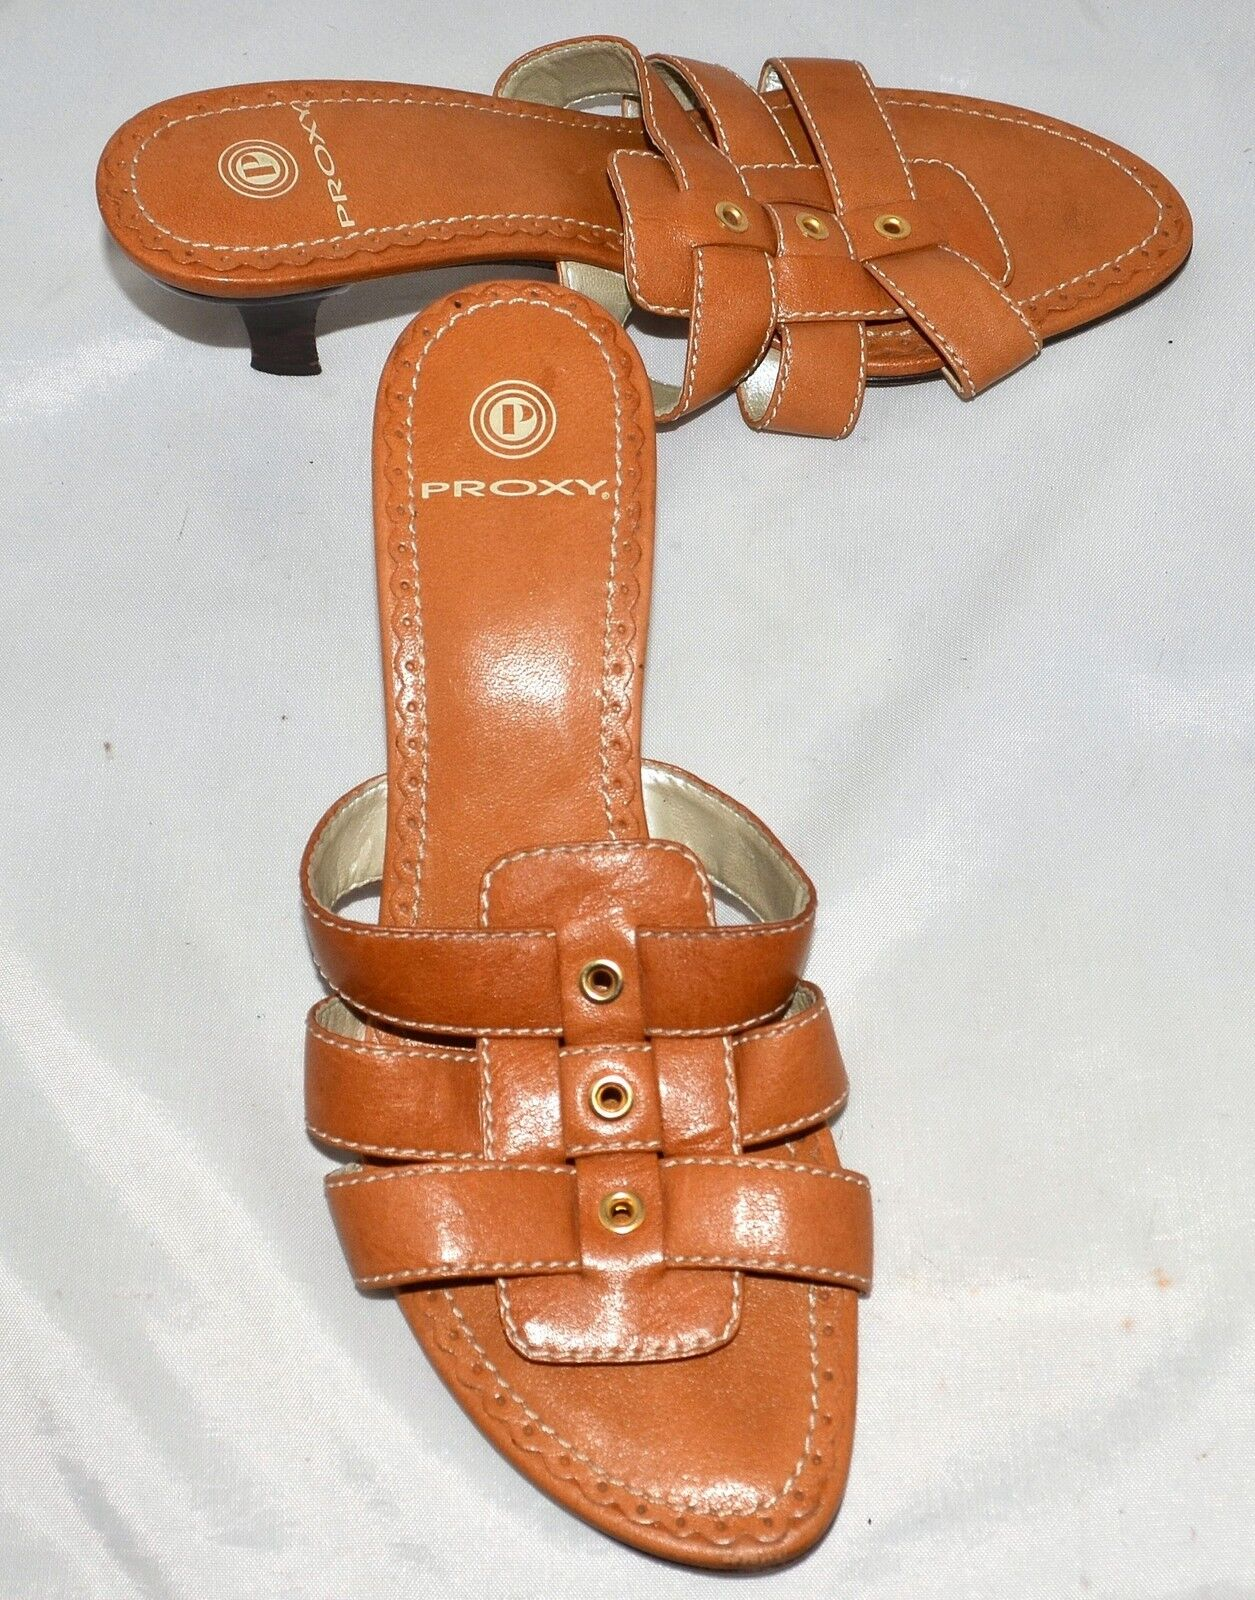 Proxy Tan Leather Slide Sandals with 2.5  Heels & Leather Soles Size 7.5 M